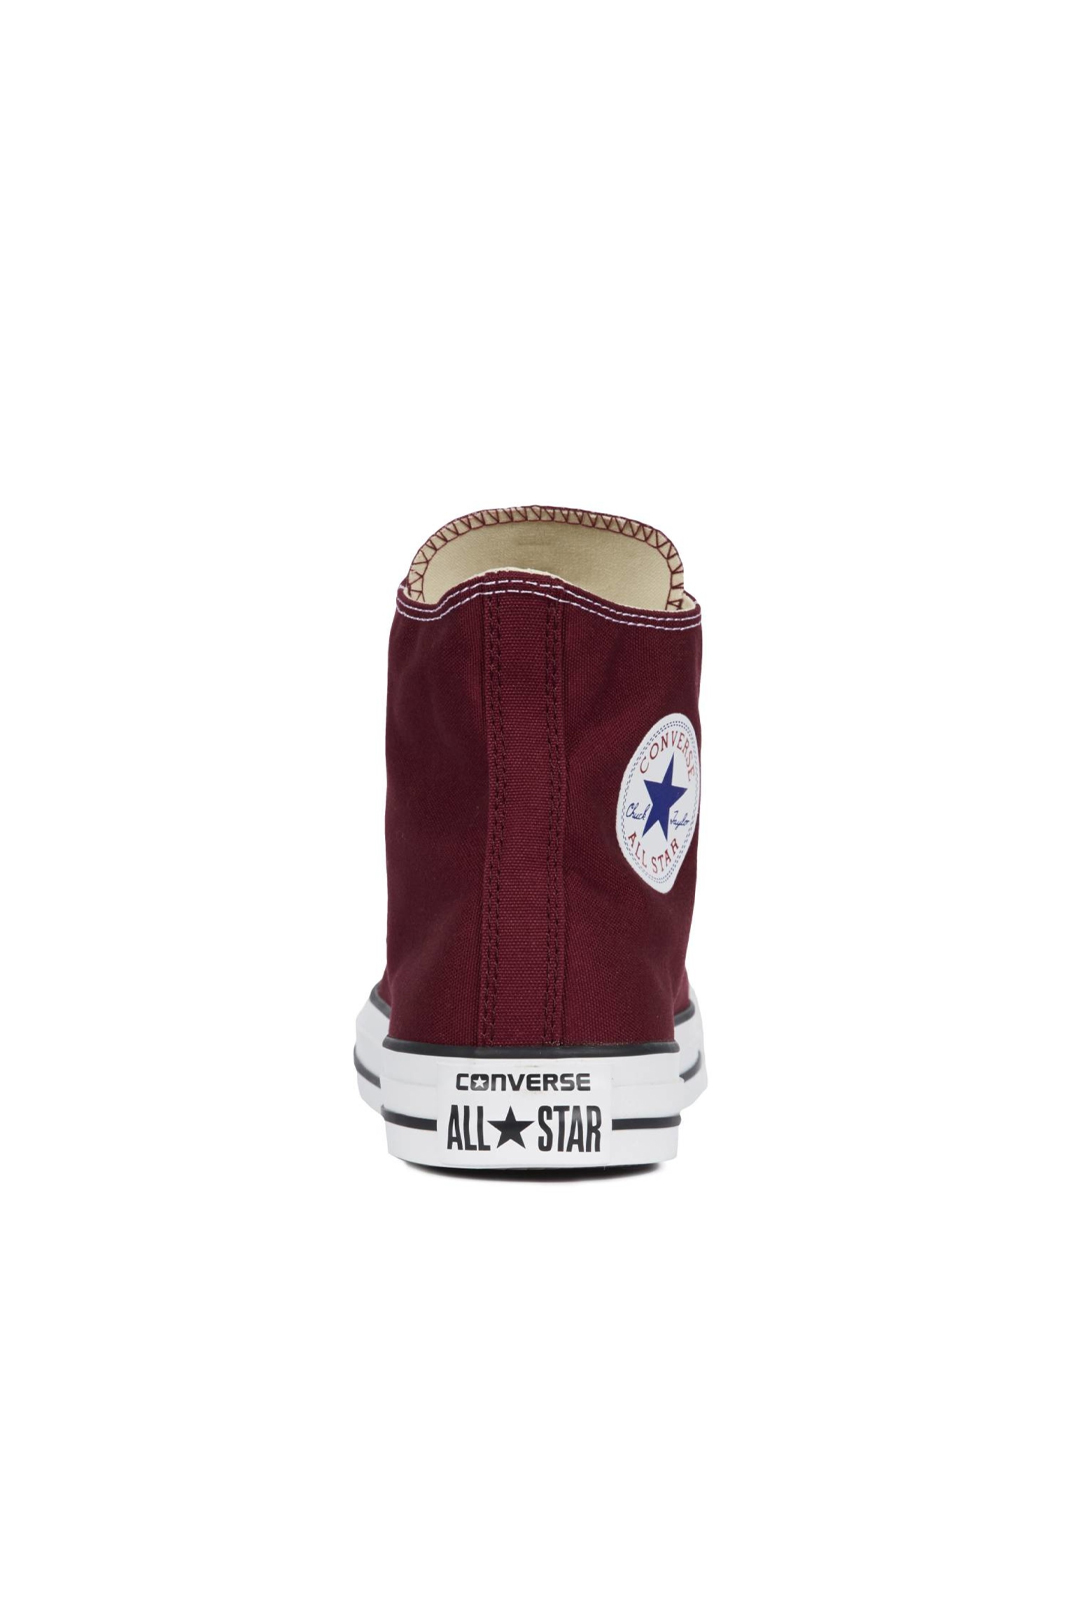 Baskets / Sport  Converse M9613-Chuck Taylor All Star Hi Tops Marron bordeaux